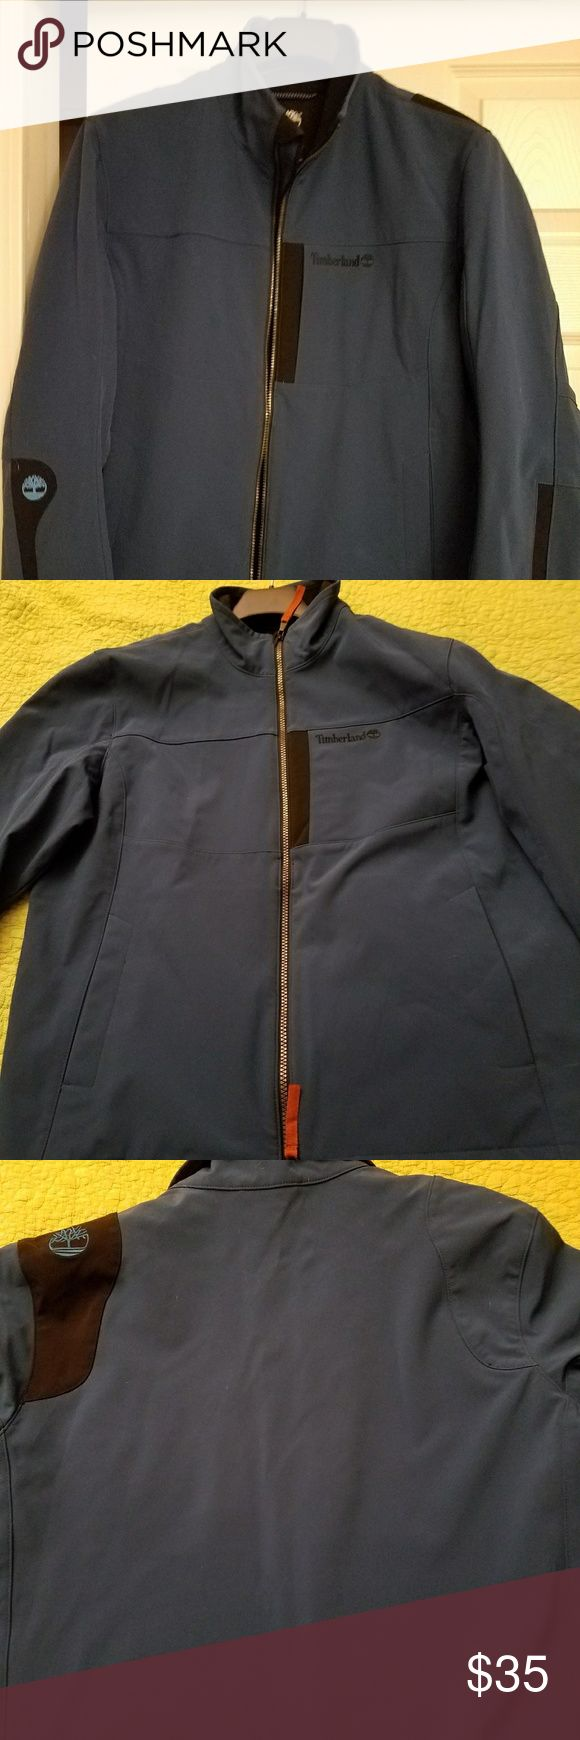 Mens Timberland softball jacket Excellent blue Timberland softshell jacket. Fleece lined,  keeps the elements at bay . Something different than NF. Size large.  22 inches across chest. Timberland Jackets & Coats Performance Jackets